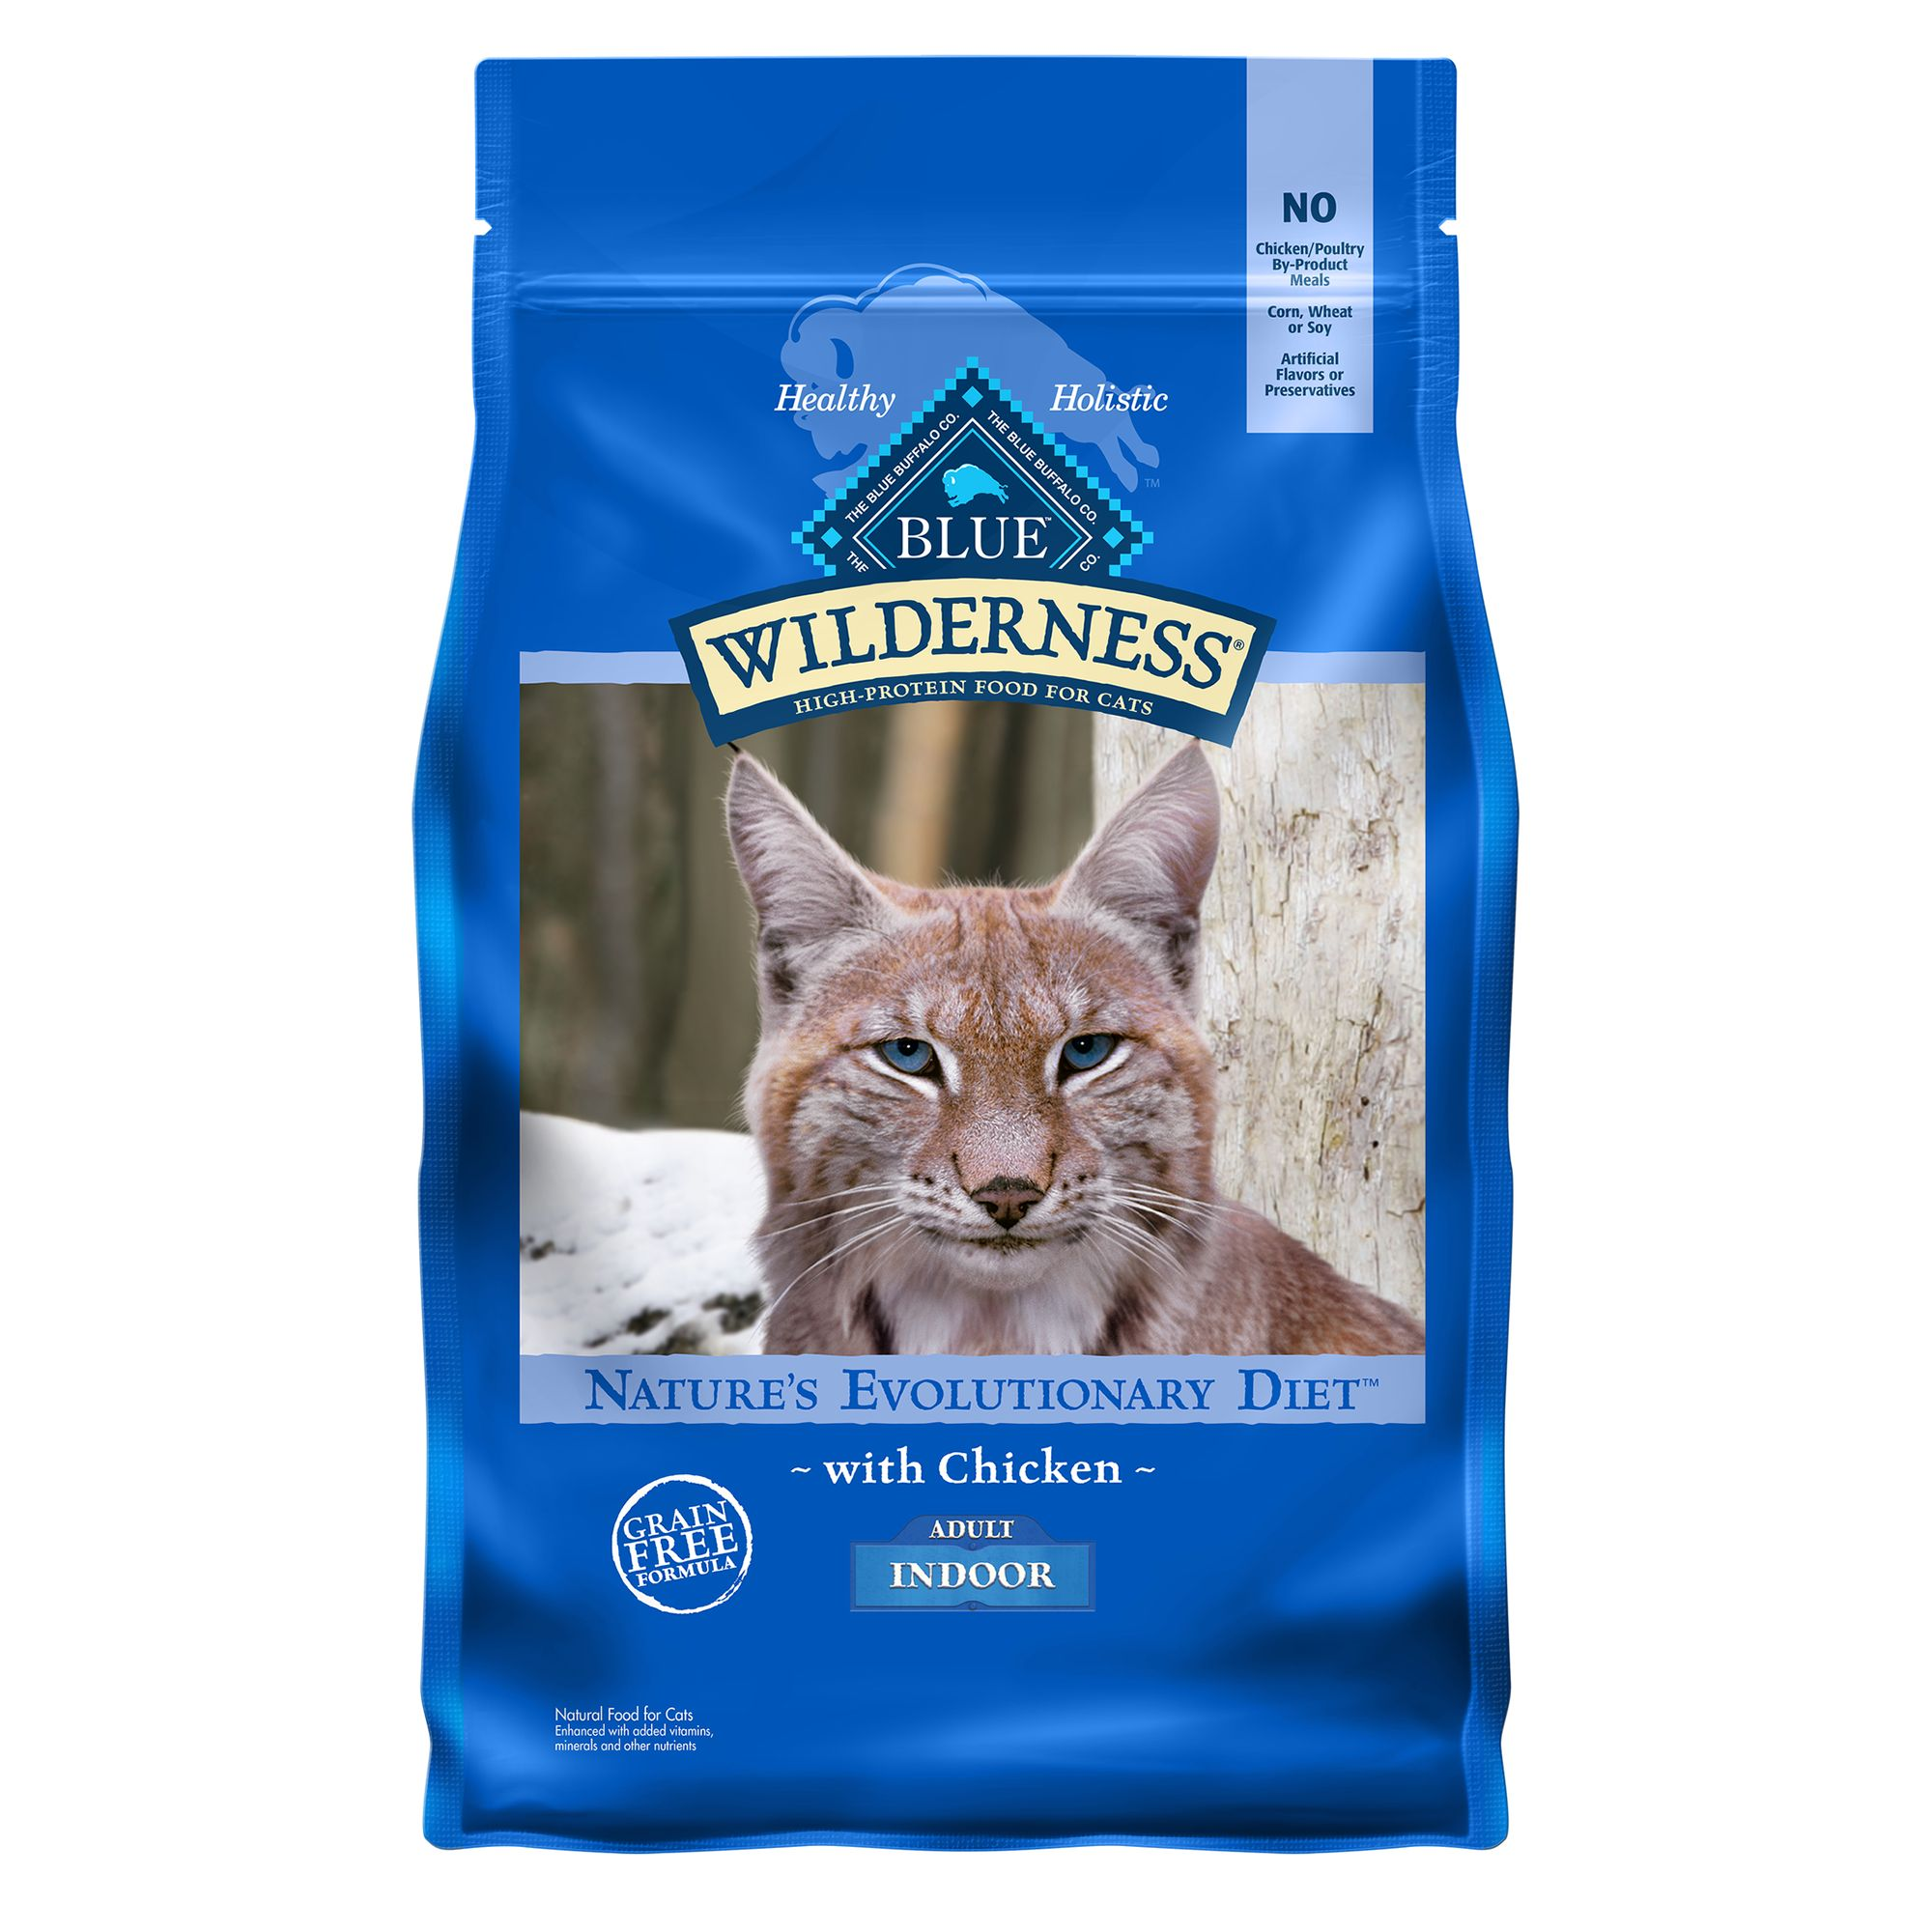 Blue Wilderness® Indoor Adult Cat Food - Grain Free, Nat